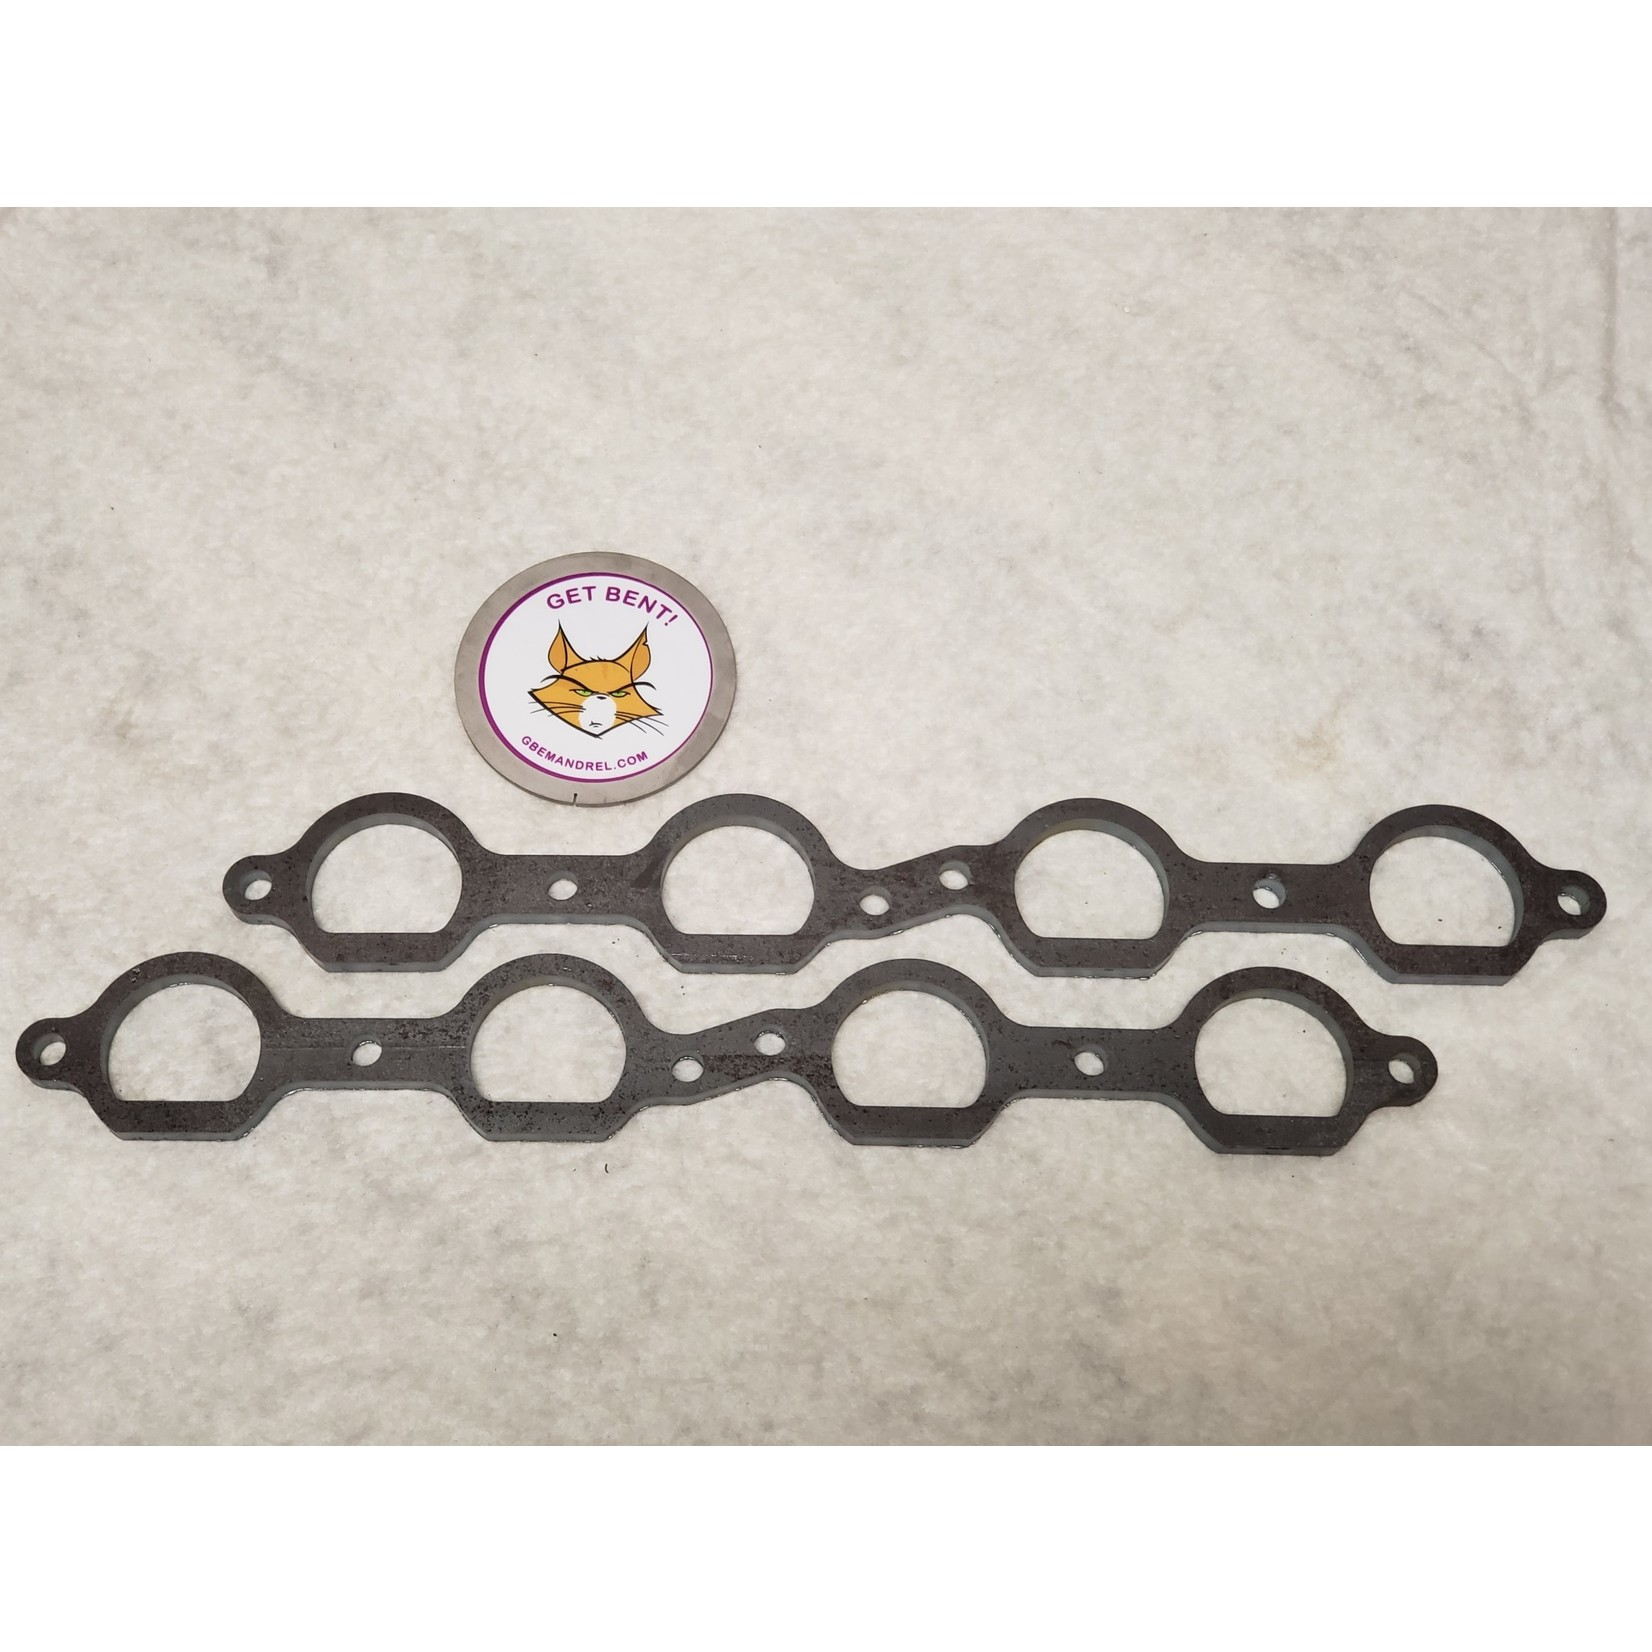 GBE GM CHEVY LS-8 STEEL HEADER FLANGES